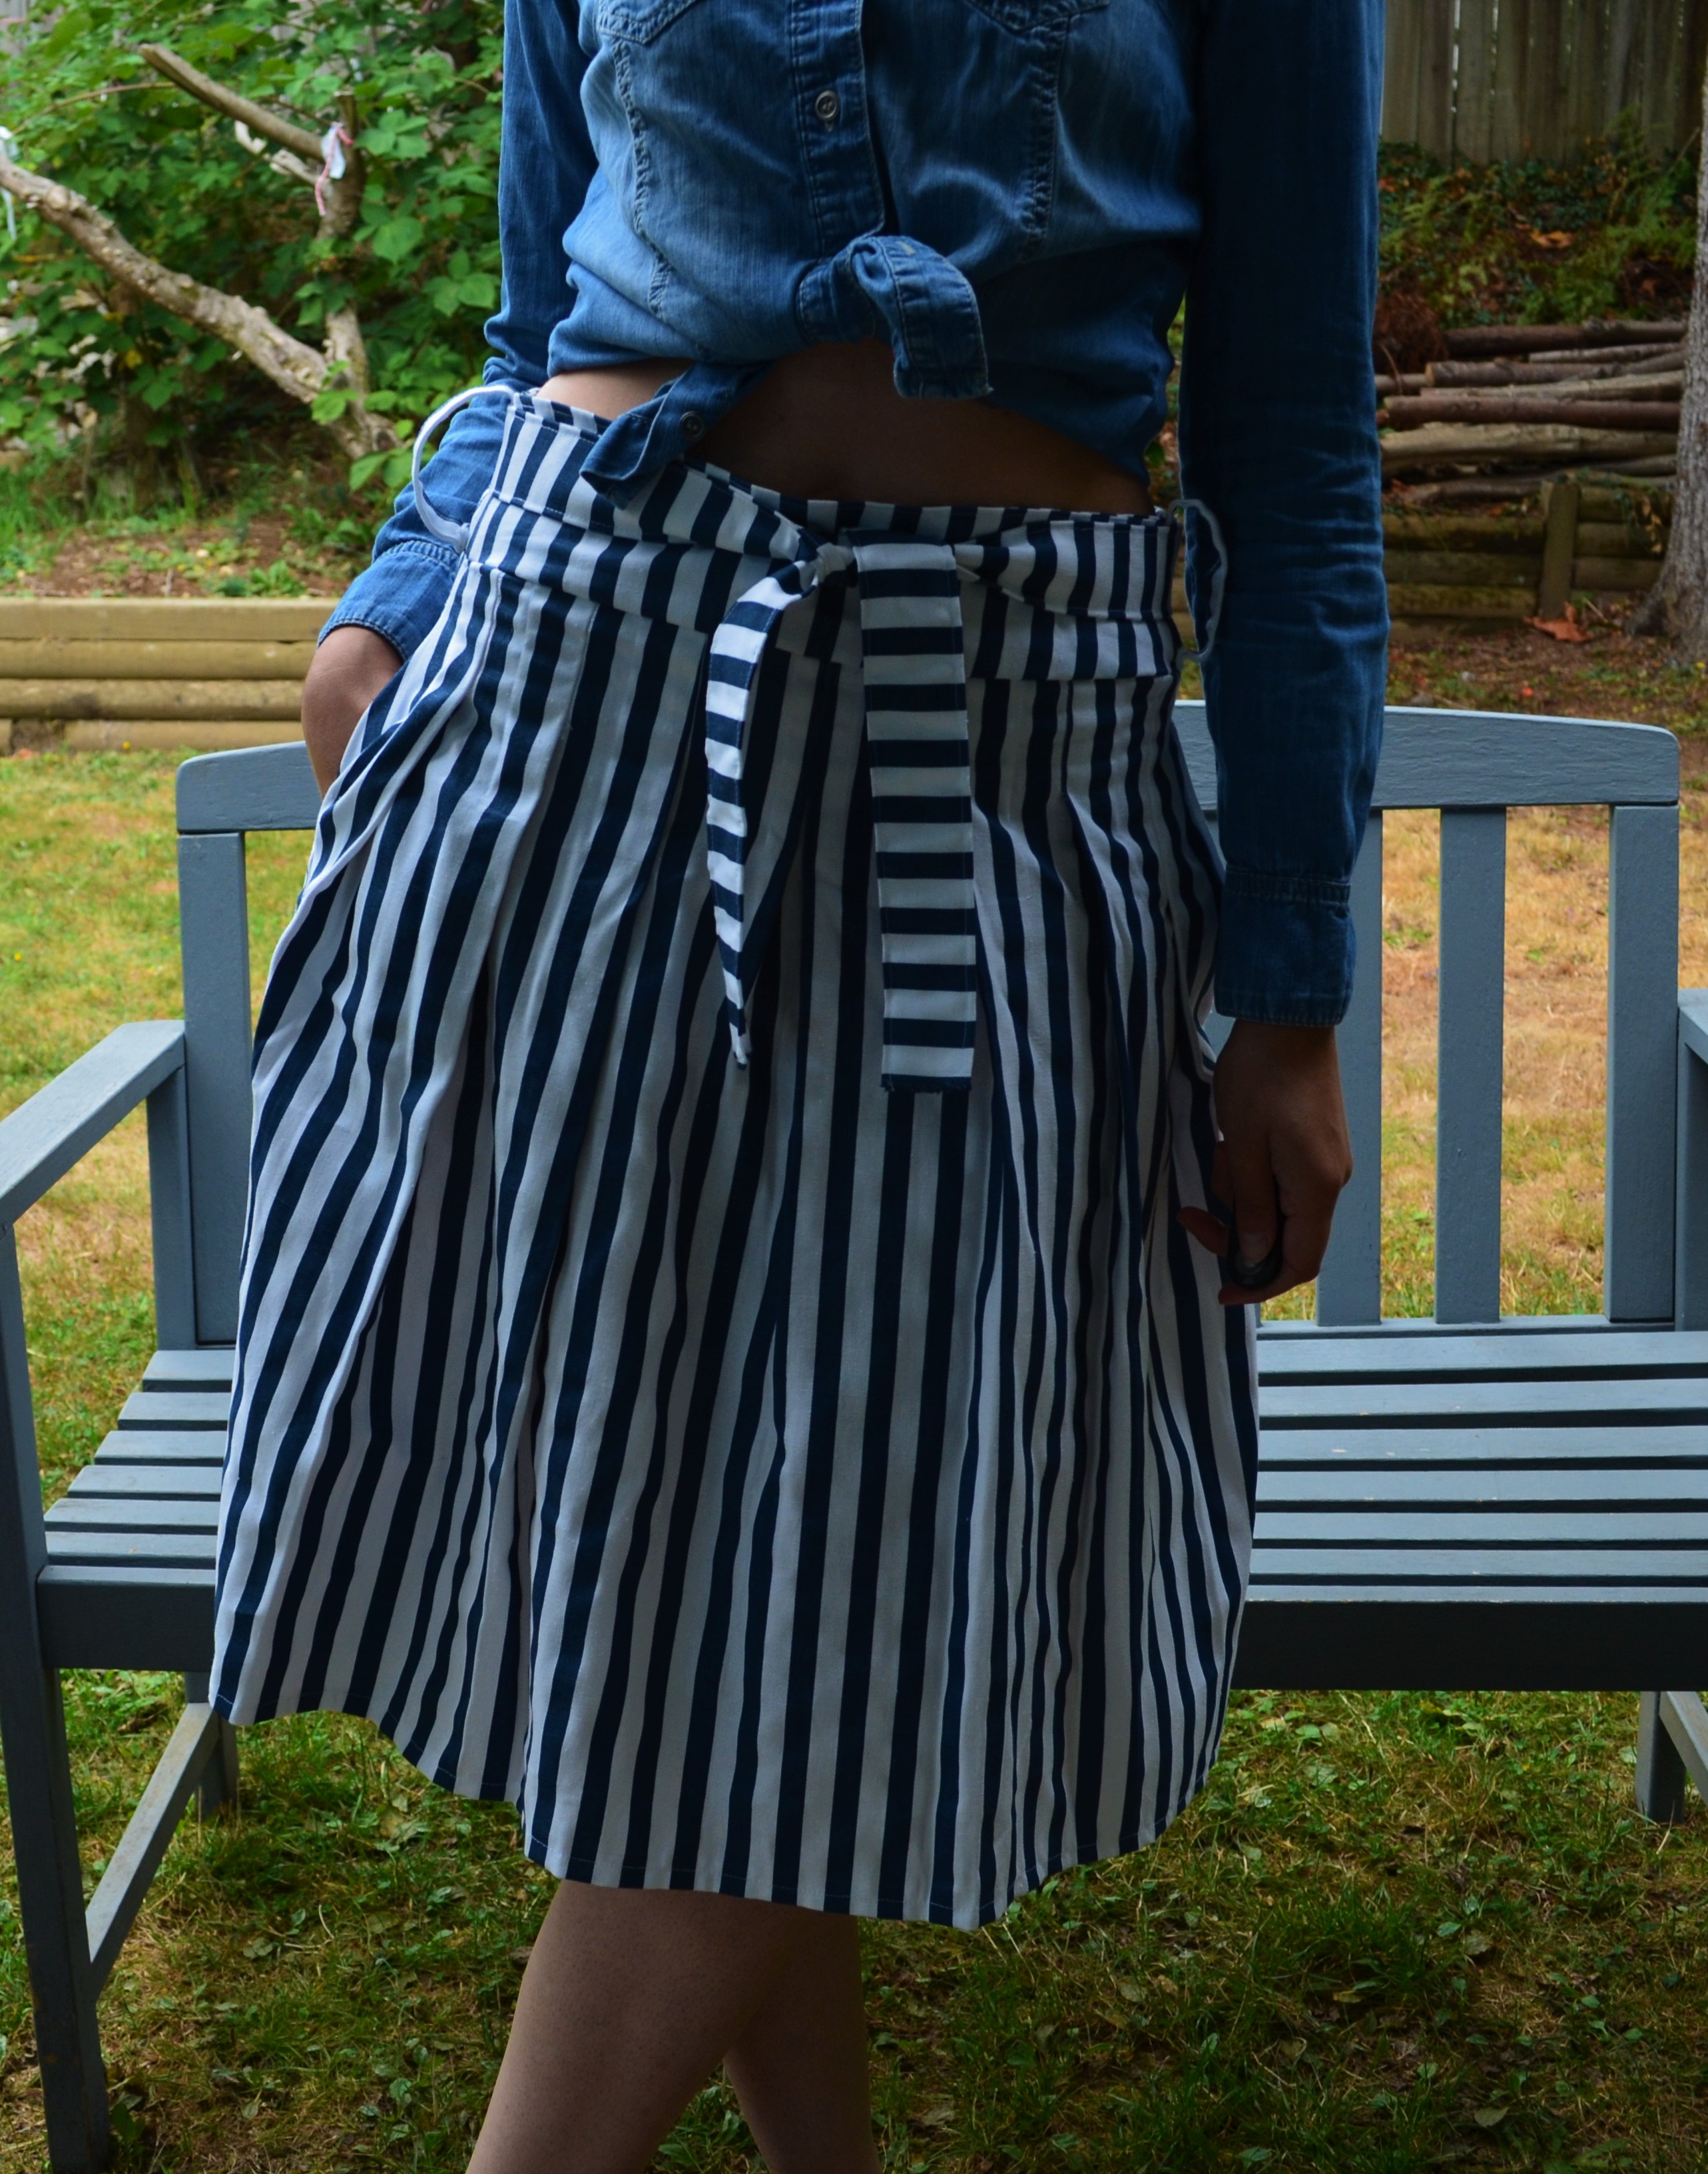 FREE SEWING PATTERN: The Pleated skirt pattern